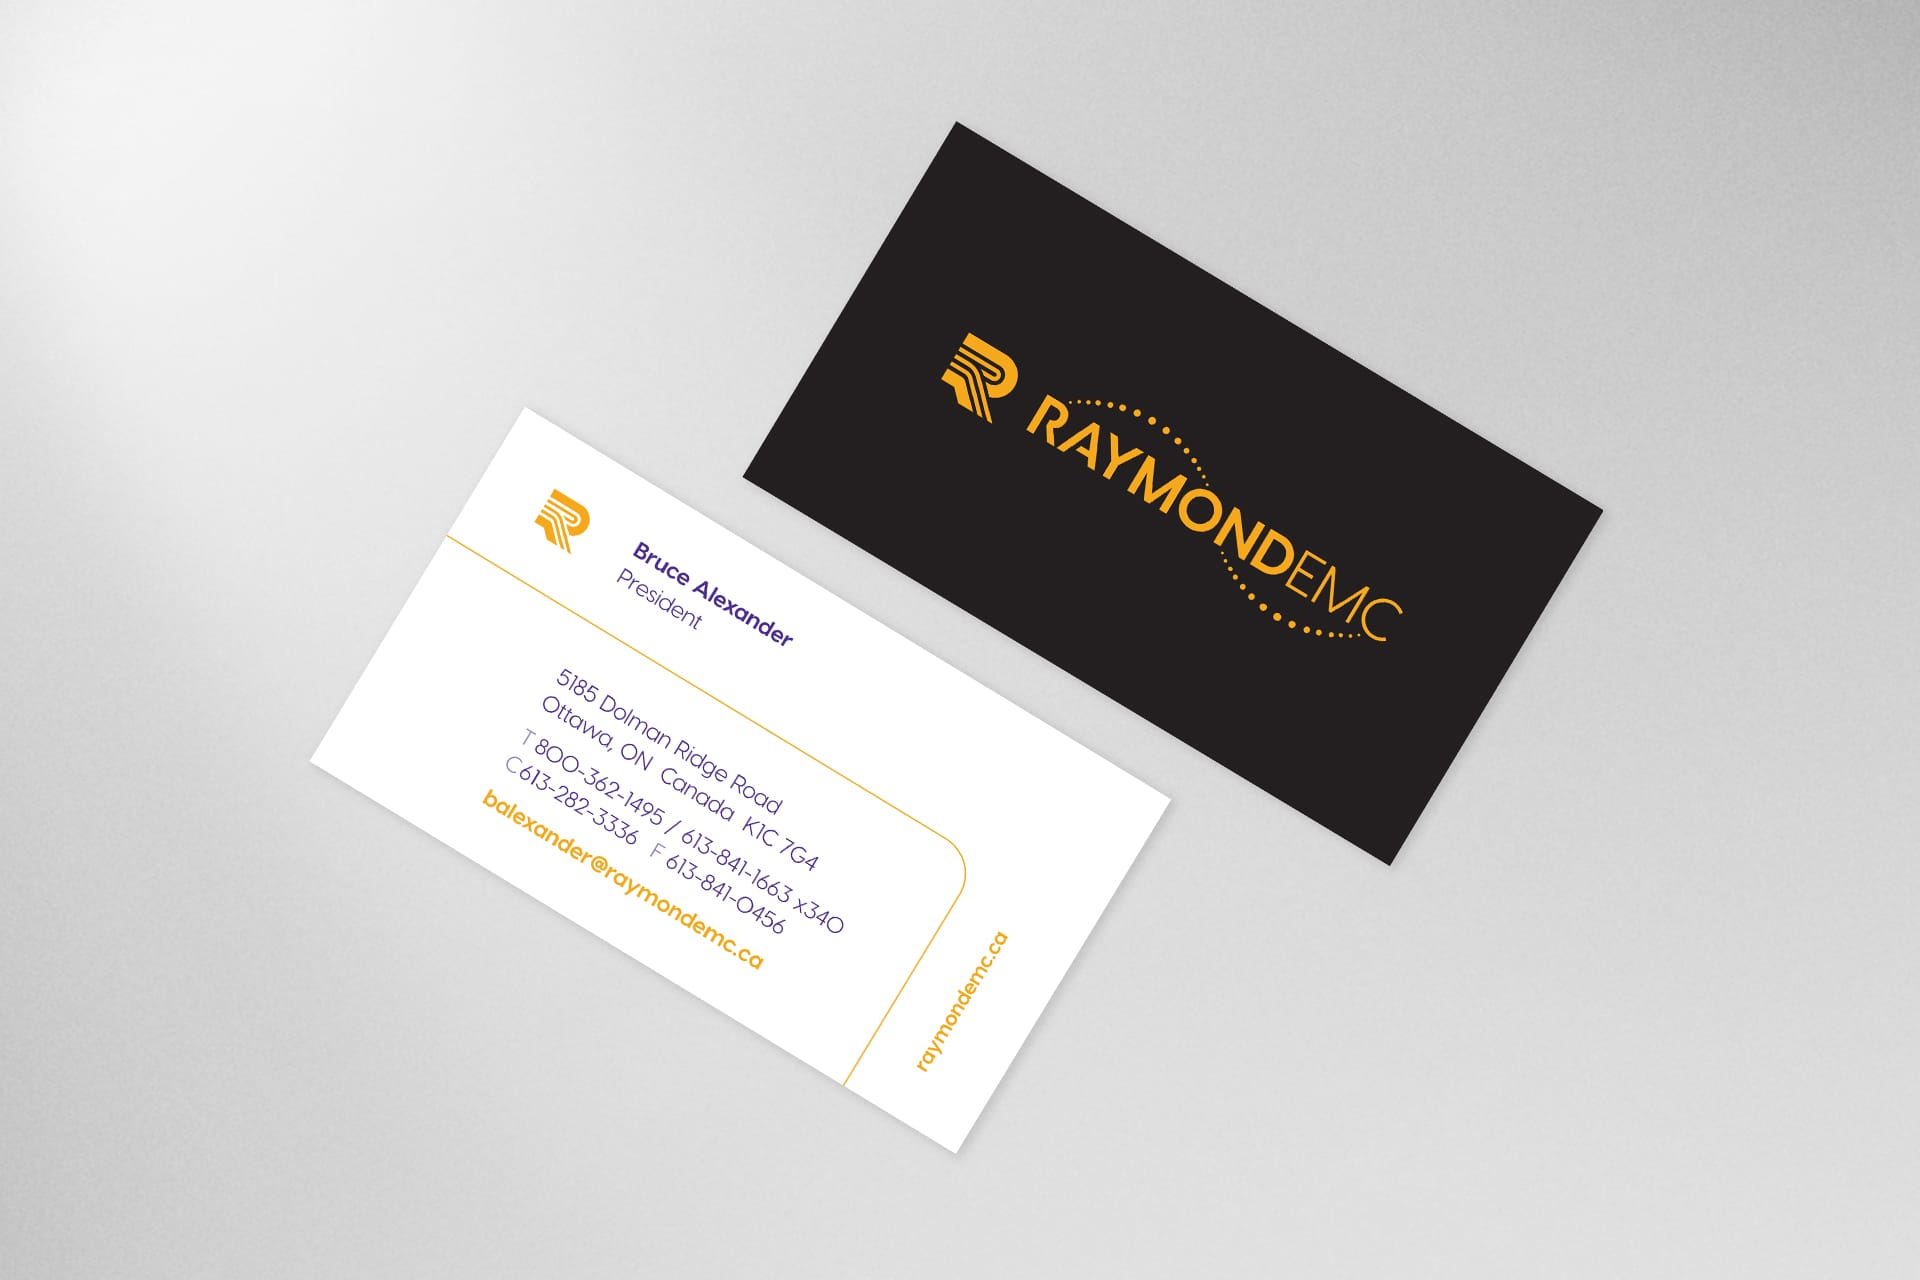 REMC - Business Card Design